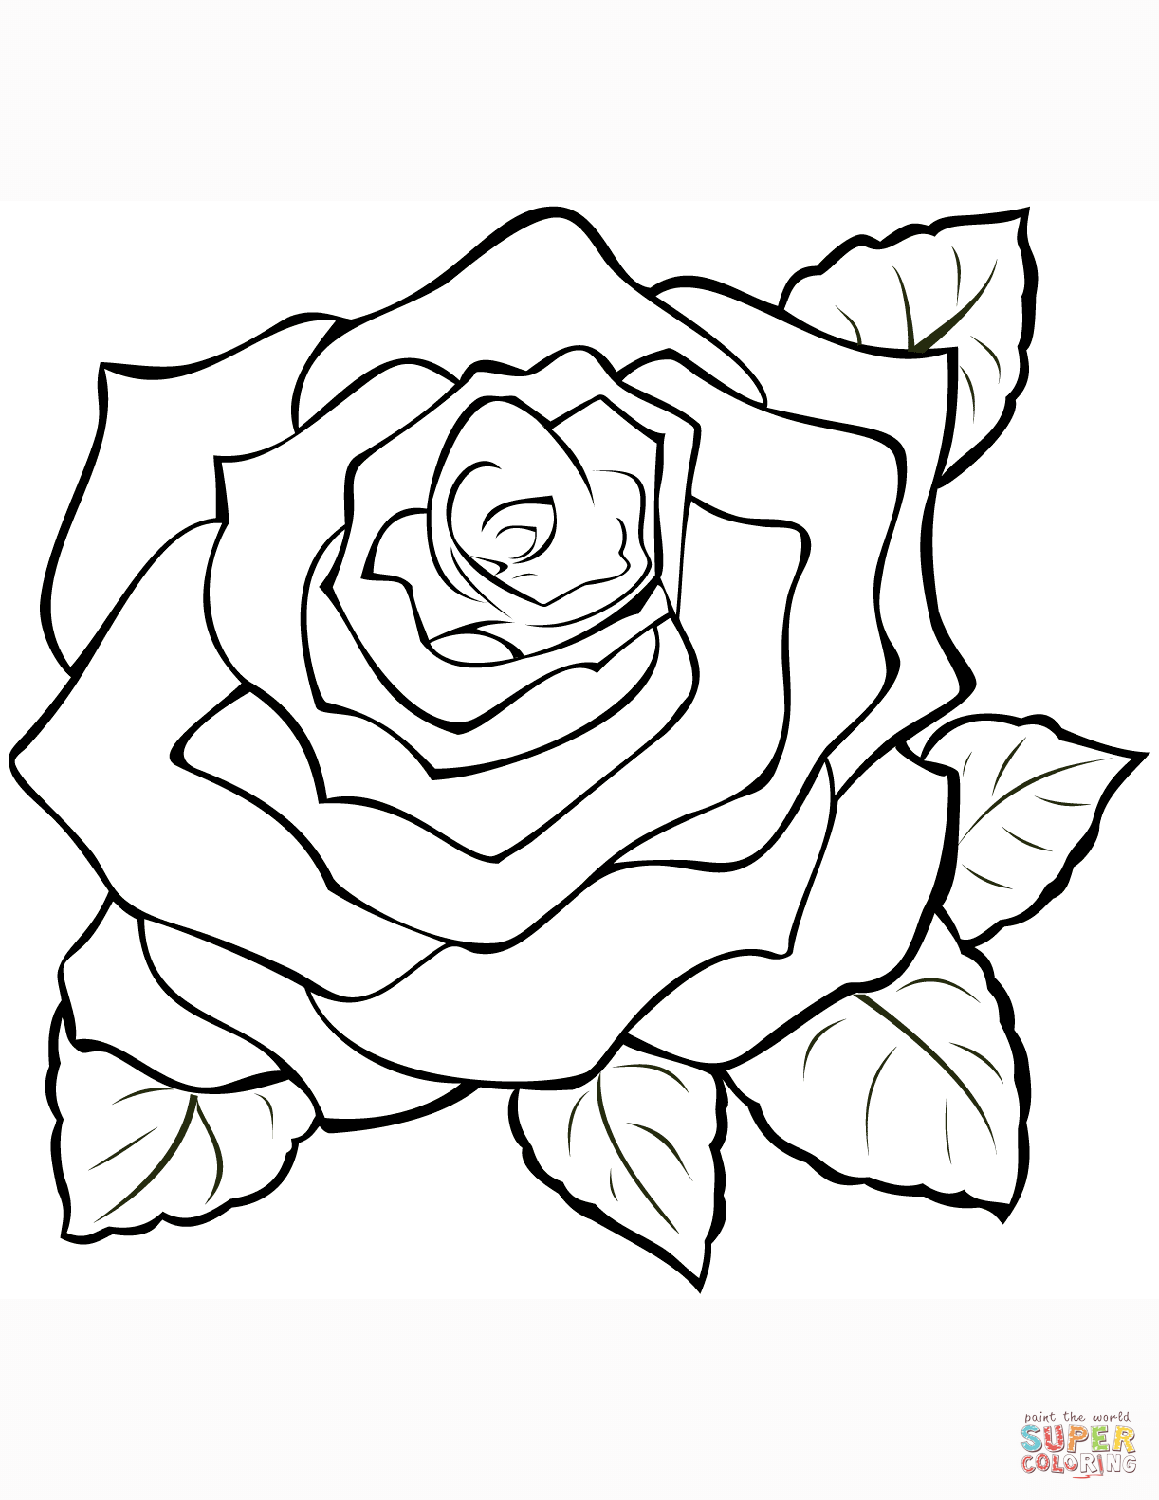 rose coloring pictures rose coloring pages download and print rose coloring pages coloring rose pictures